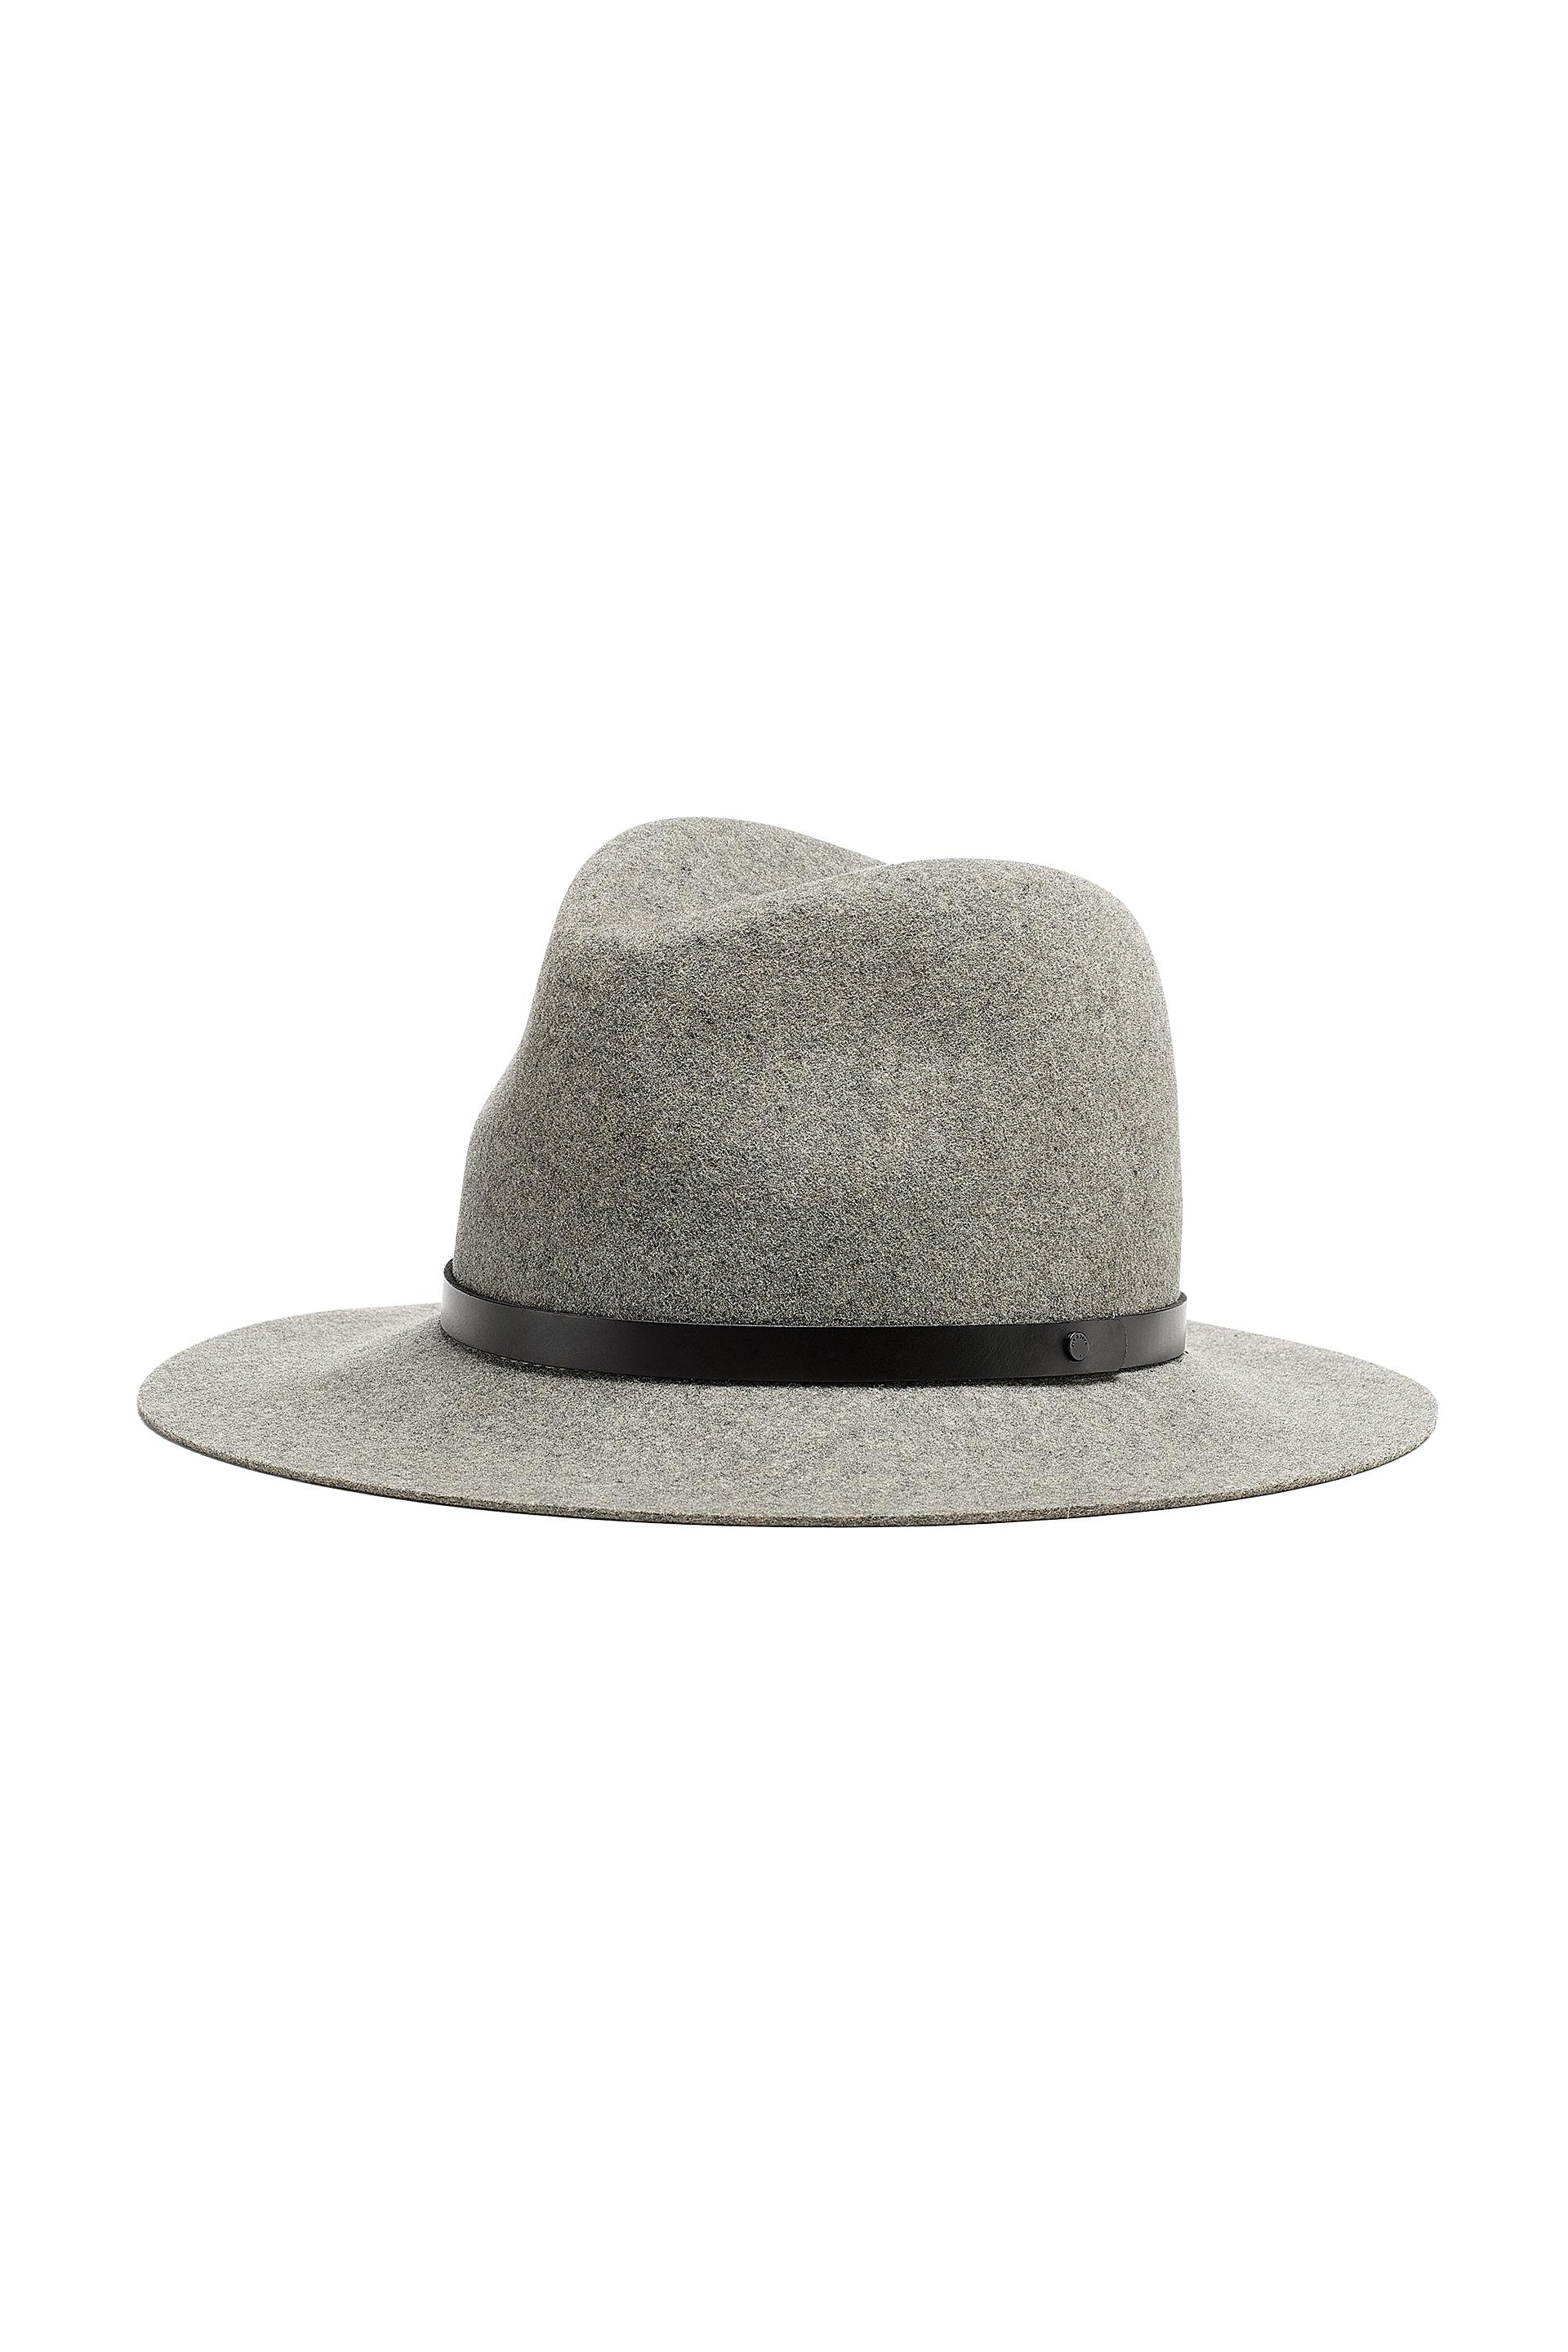 291cc86583411 Rag   Bone Floppy Brim Fedora in Gray - Lyst